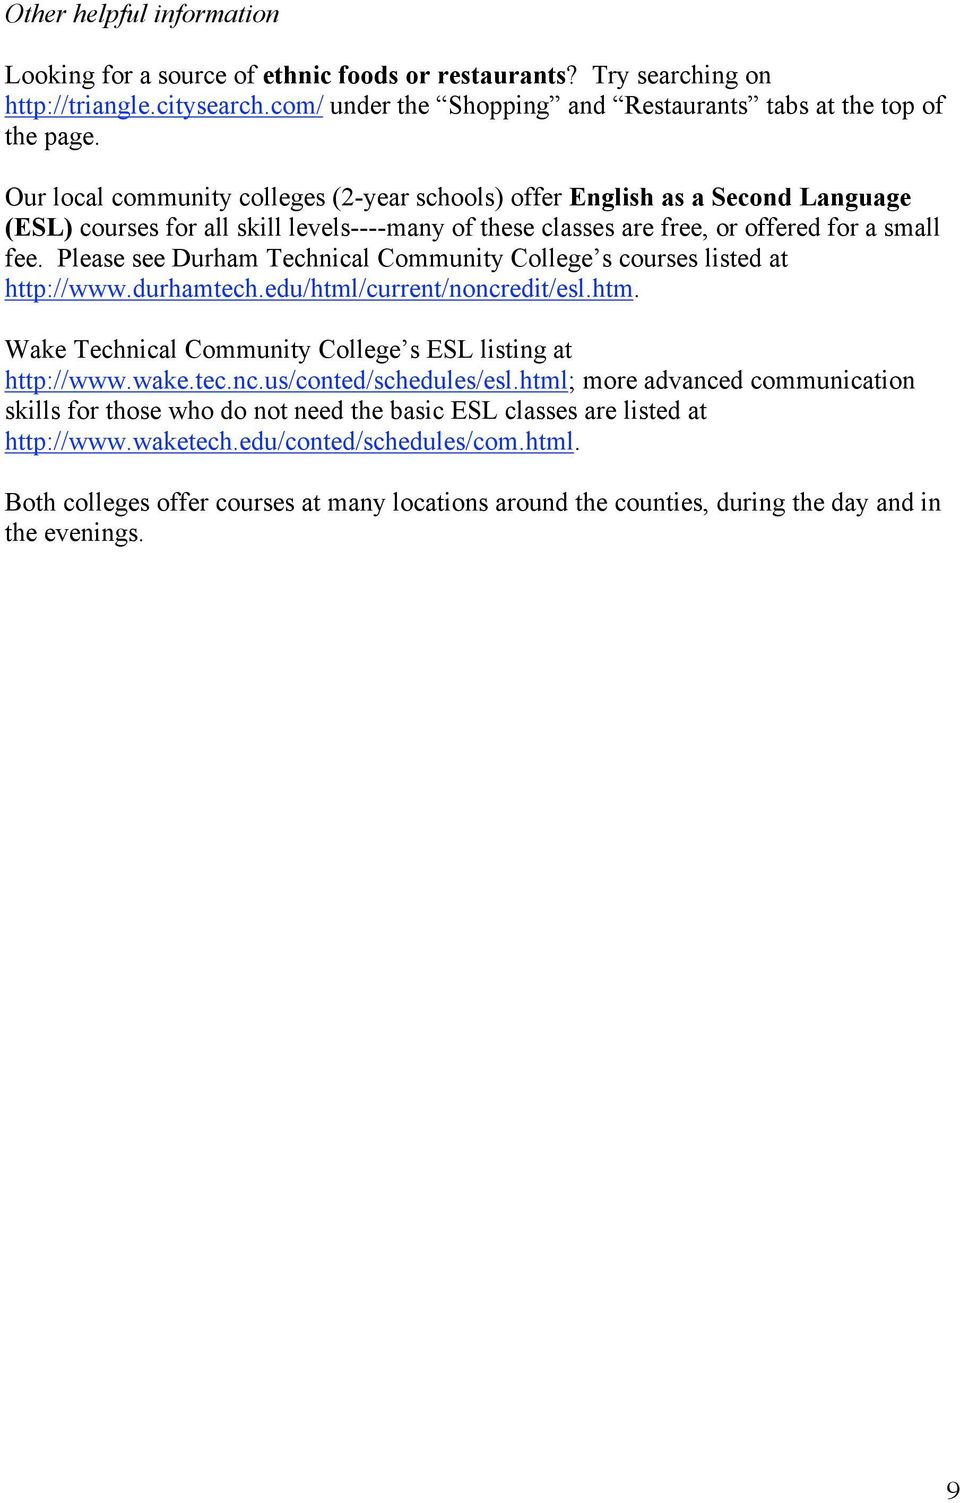 Please see Durham Technical Community College s courses listed at http://www.durhamtech.edu/html/current/noncredit/esl.htm. Wake Technical Community College s ESL listing at http://www.wake.tec.nc.us/conted/schedules/esl.